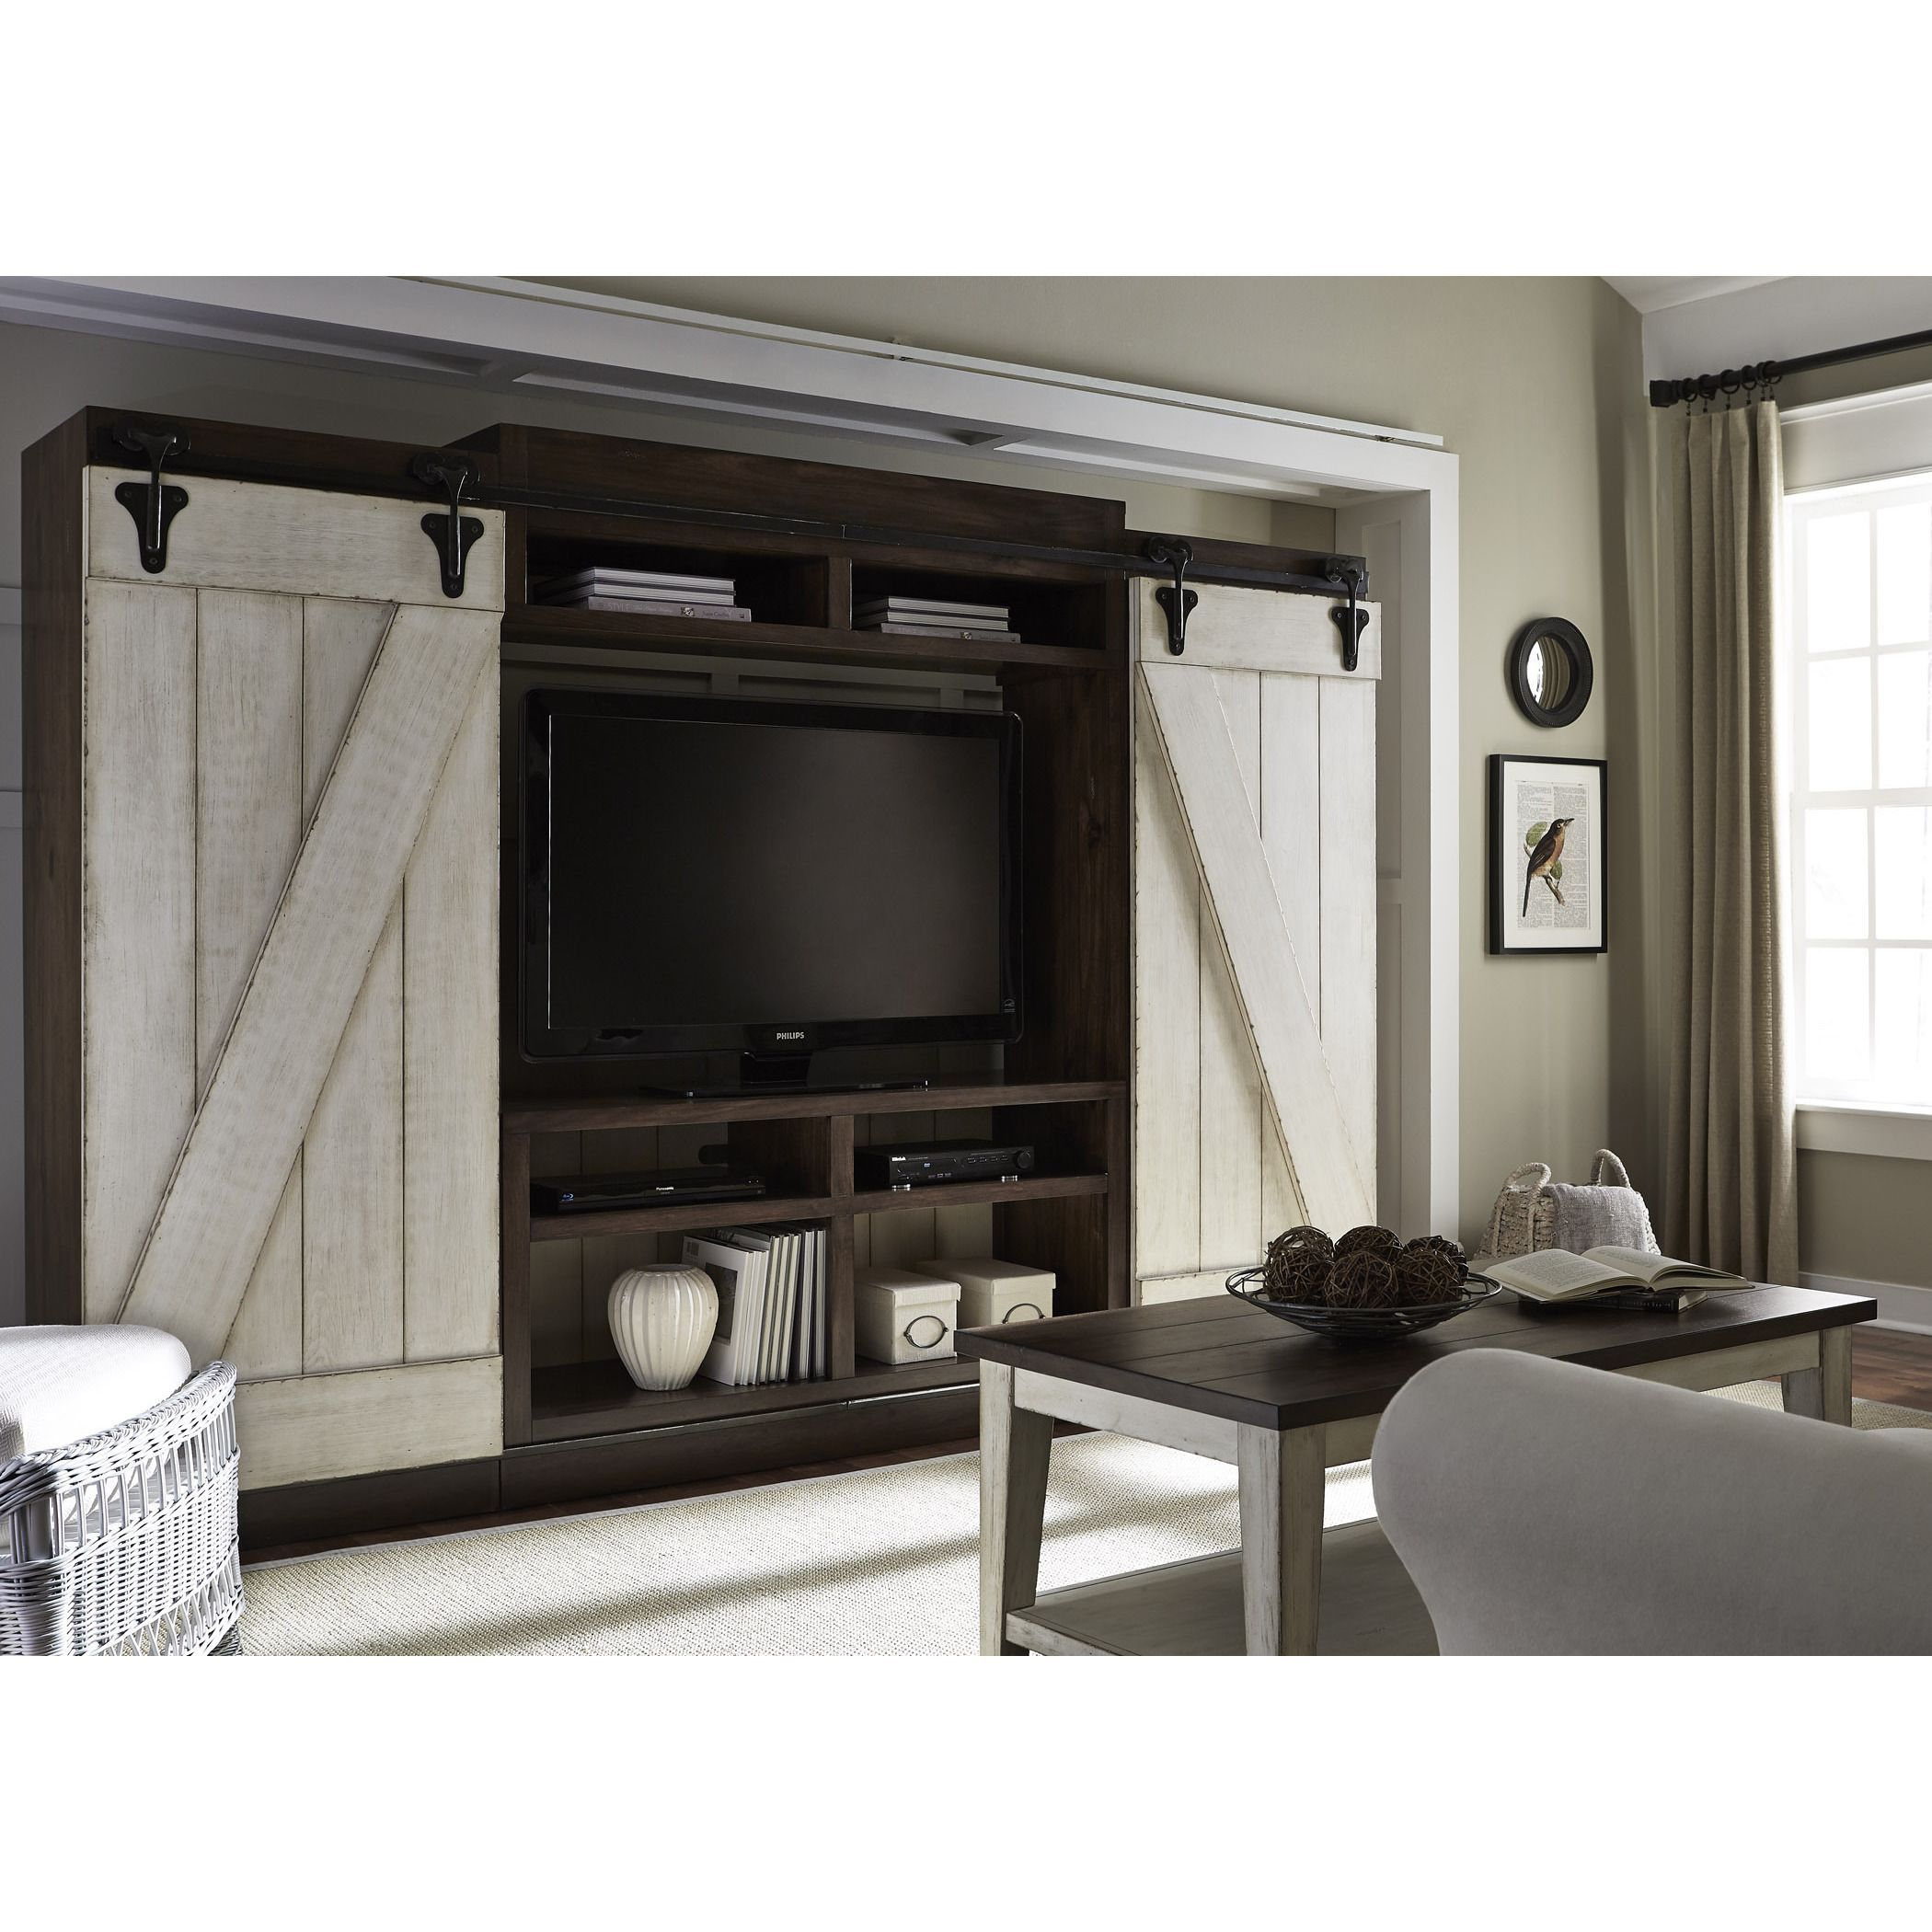 Unique styling with stick built design and hardware accents. Casual ...